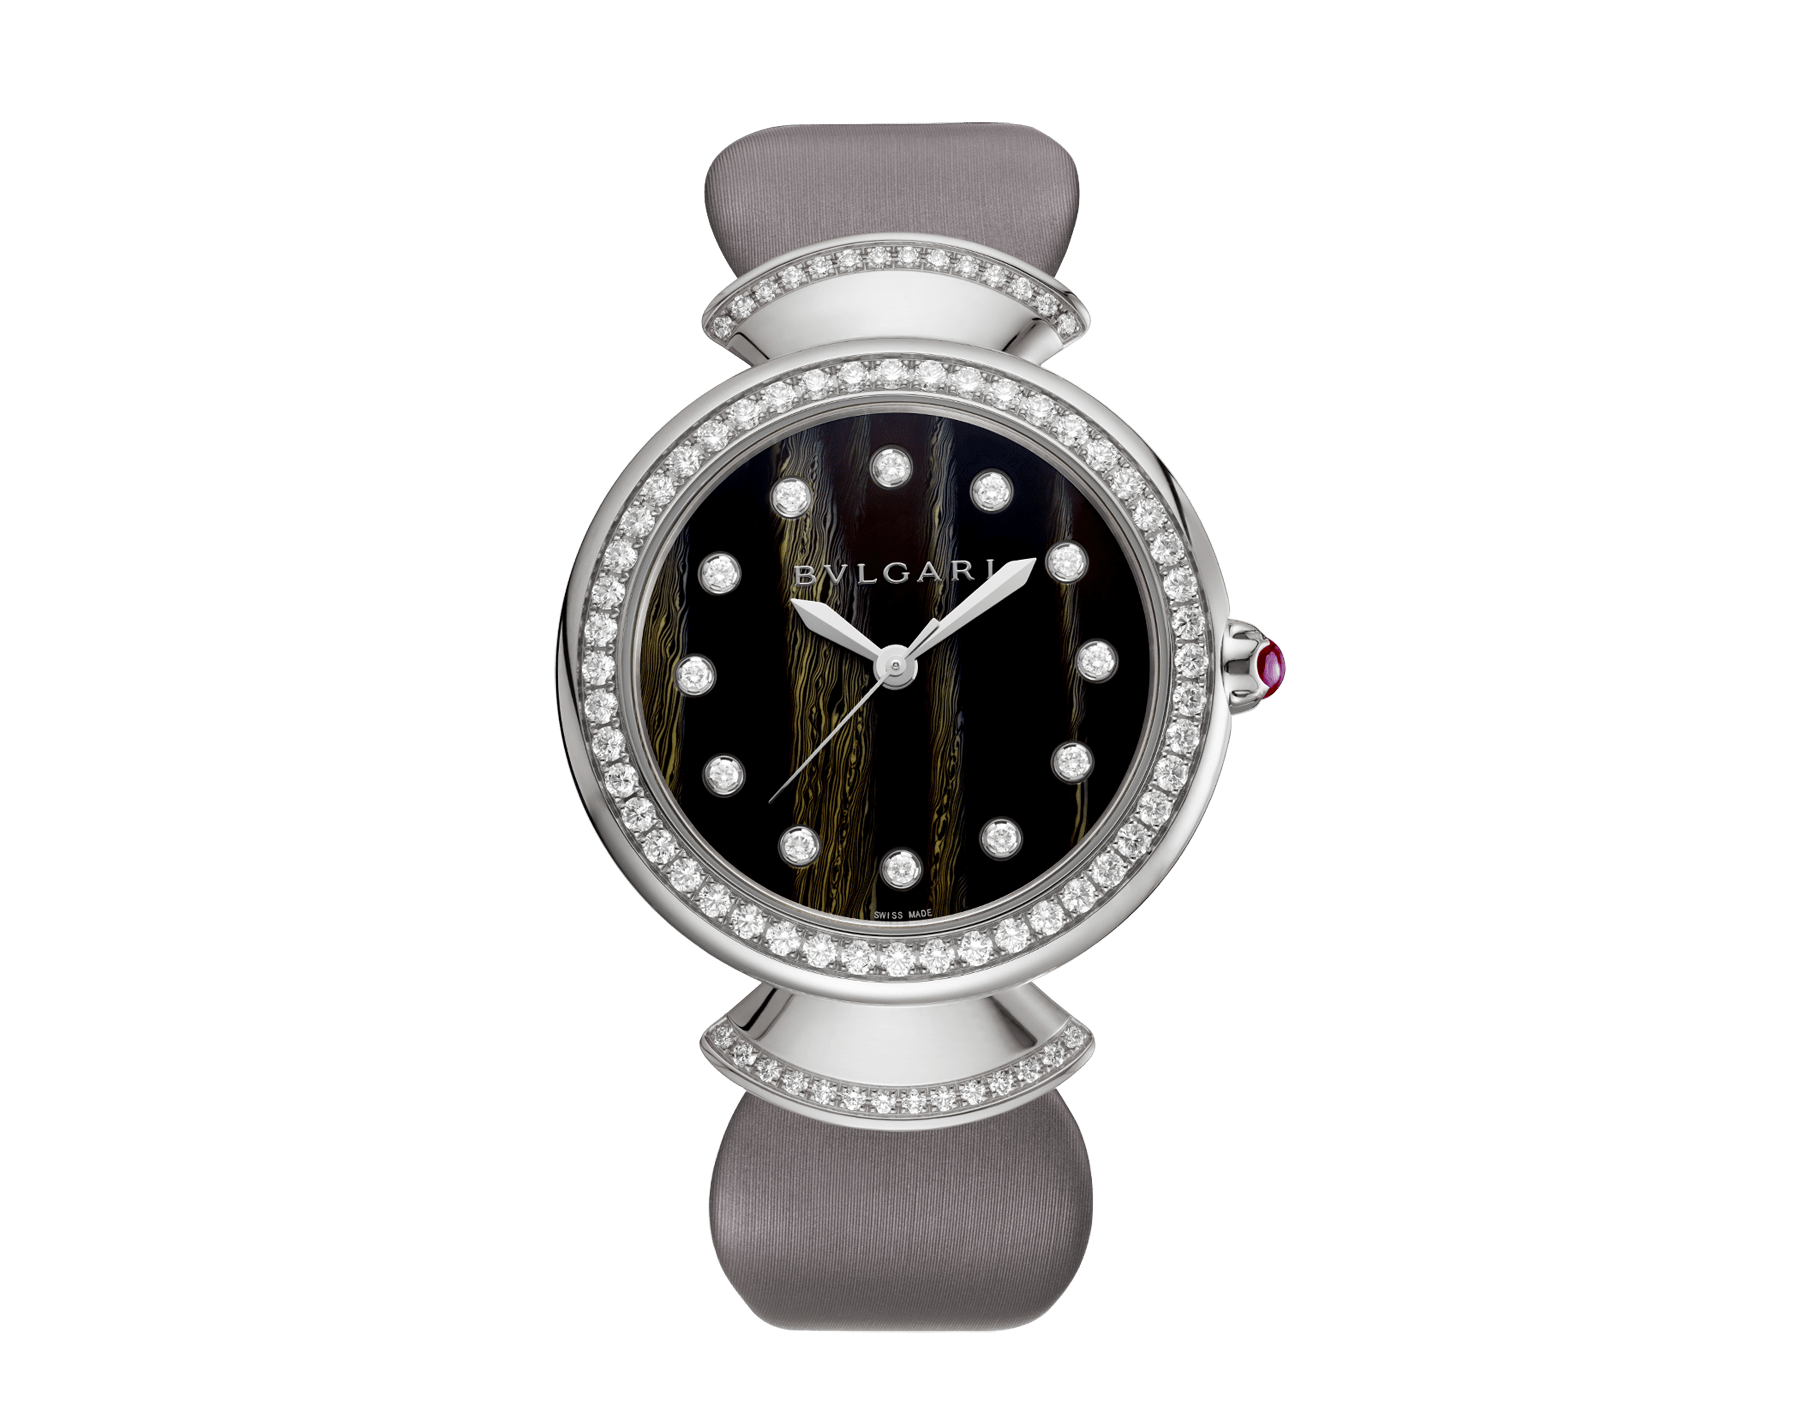 DIVAS' DREAM watch with 18 kt white gold case set with brilliant-cut diamonds, acetate dial, diamond indexes and grey satin bracelet 102576 image 1